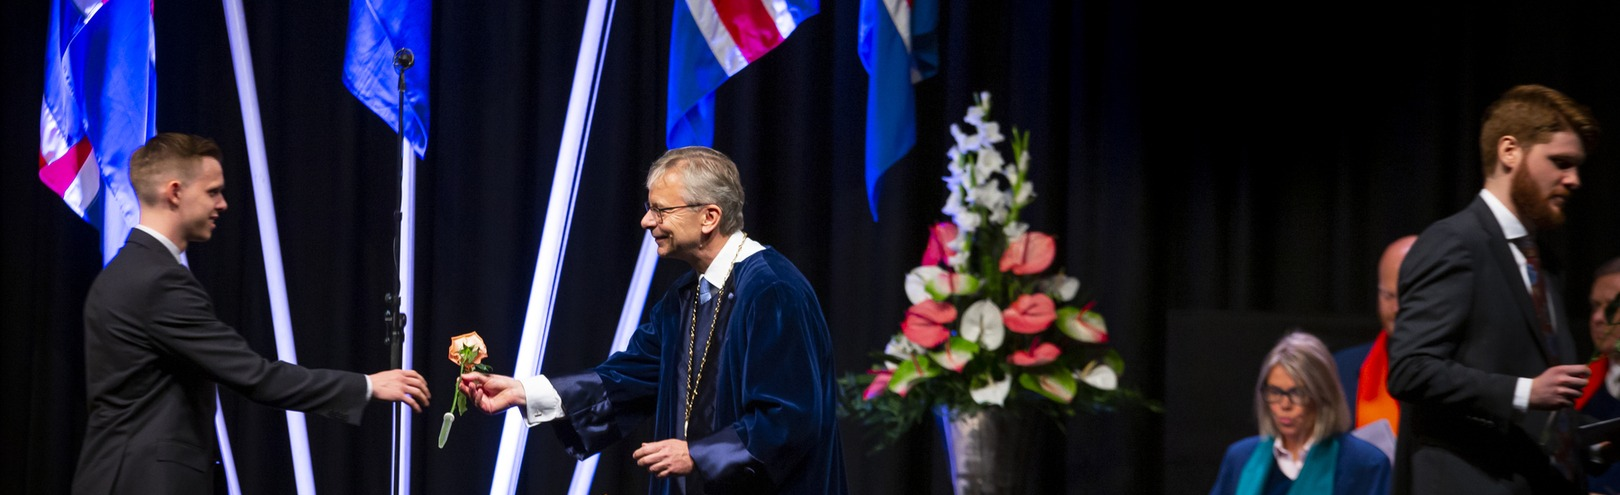 Record number of graduates from the University of Iceland - Available at University of Iceland